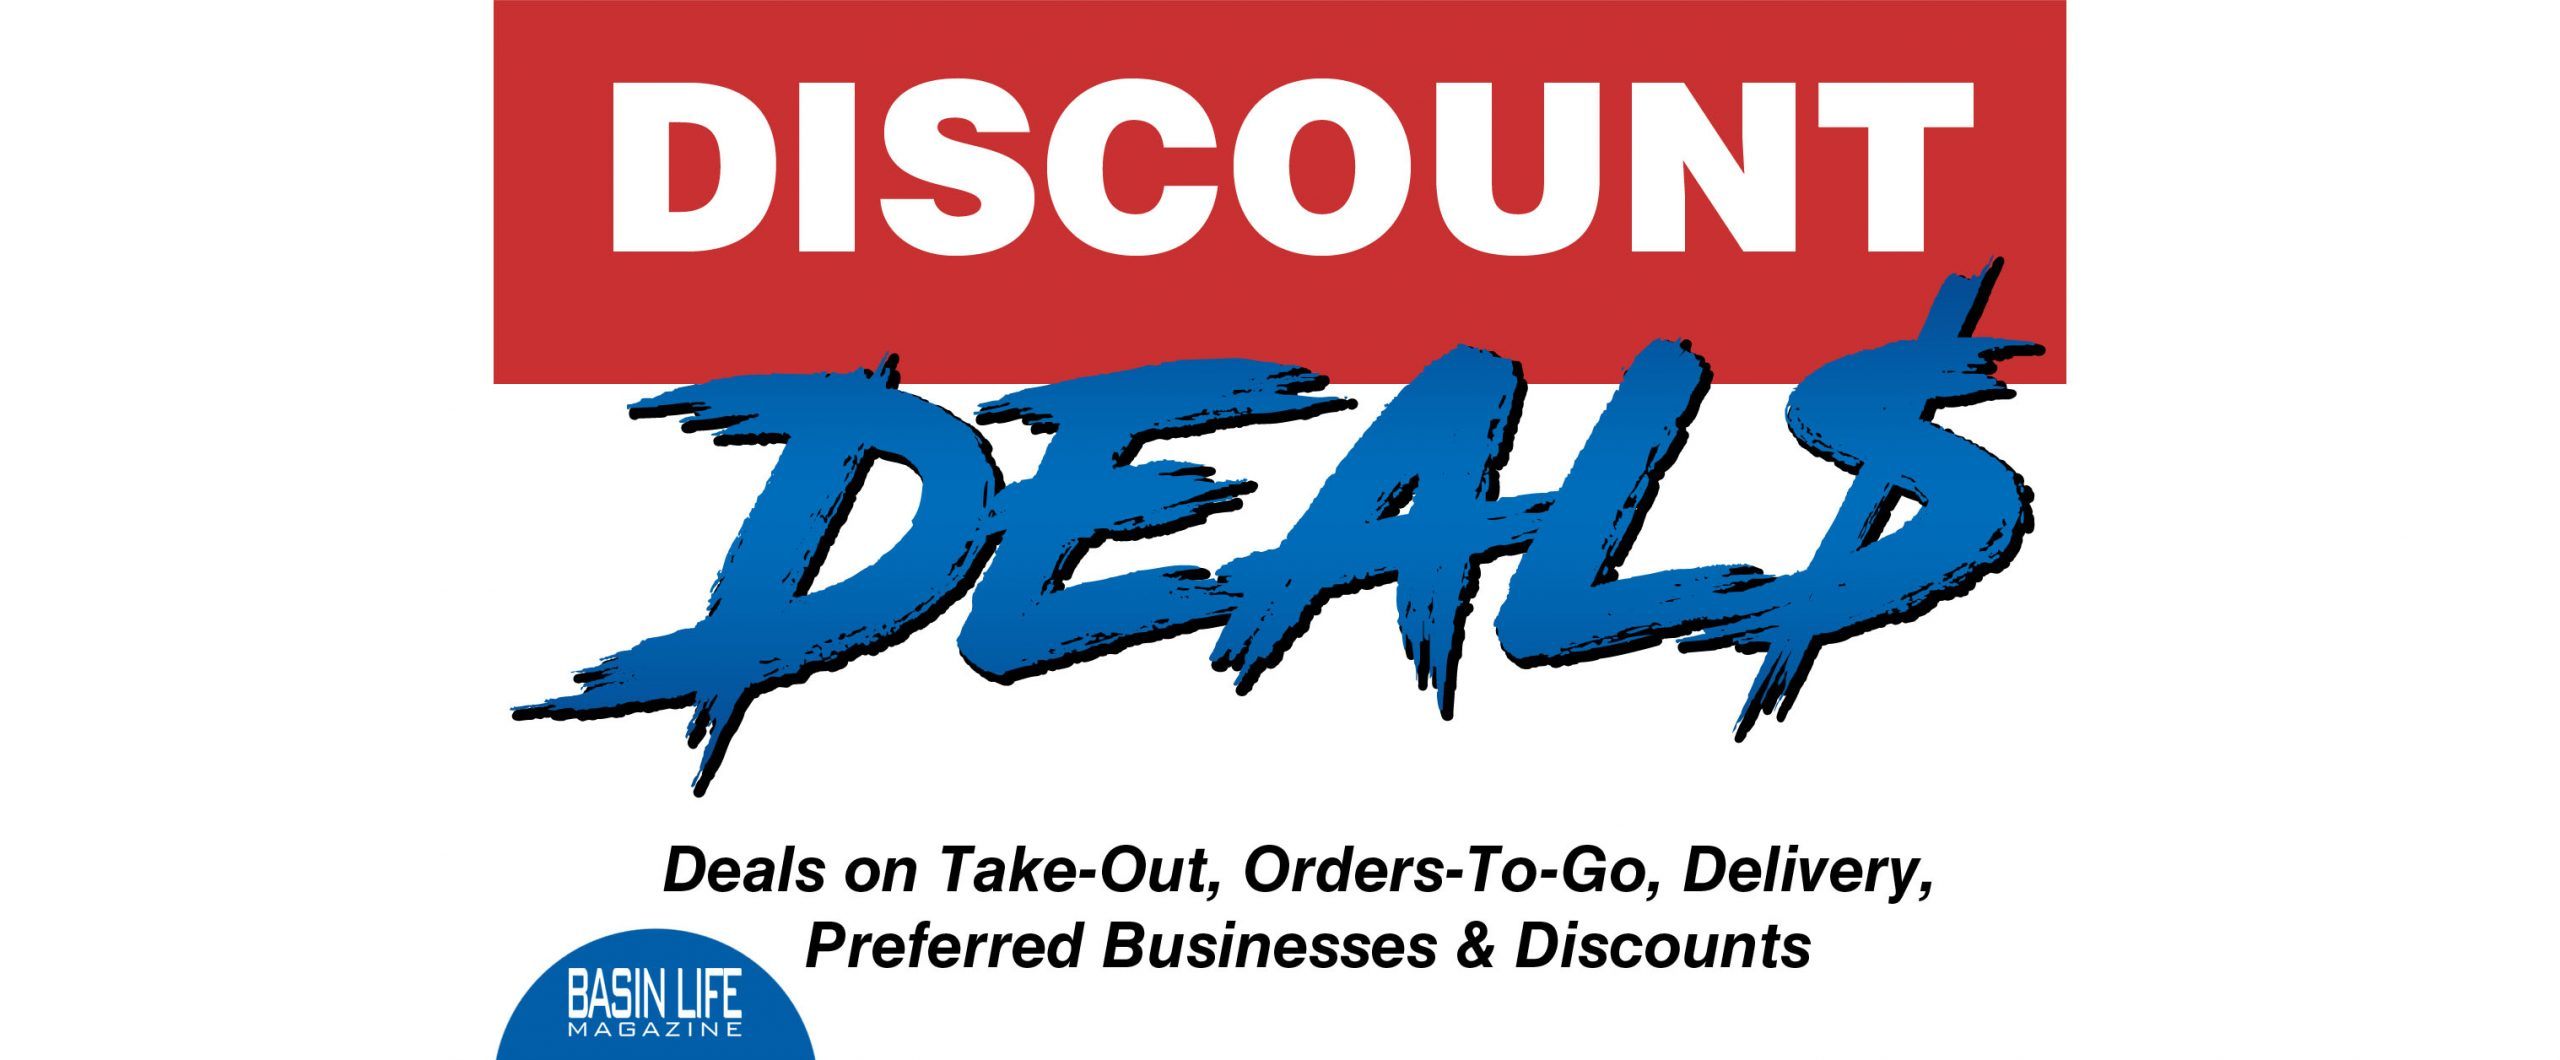 Deals Take Out Curbside Delivery Our Preferred Professionals